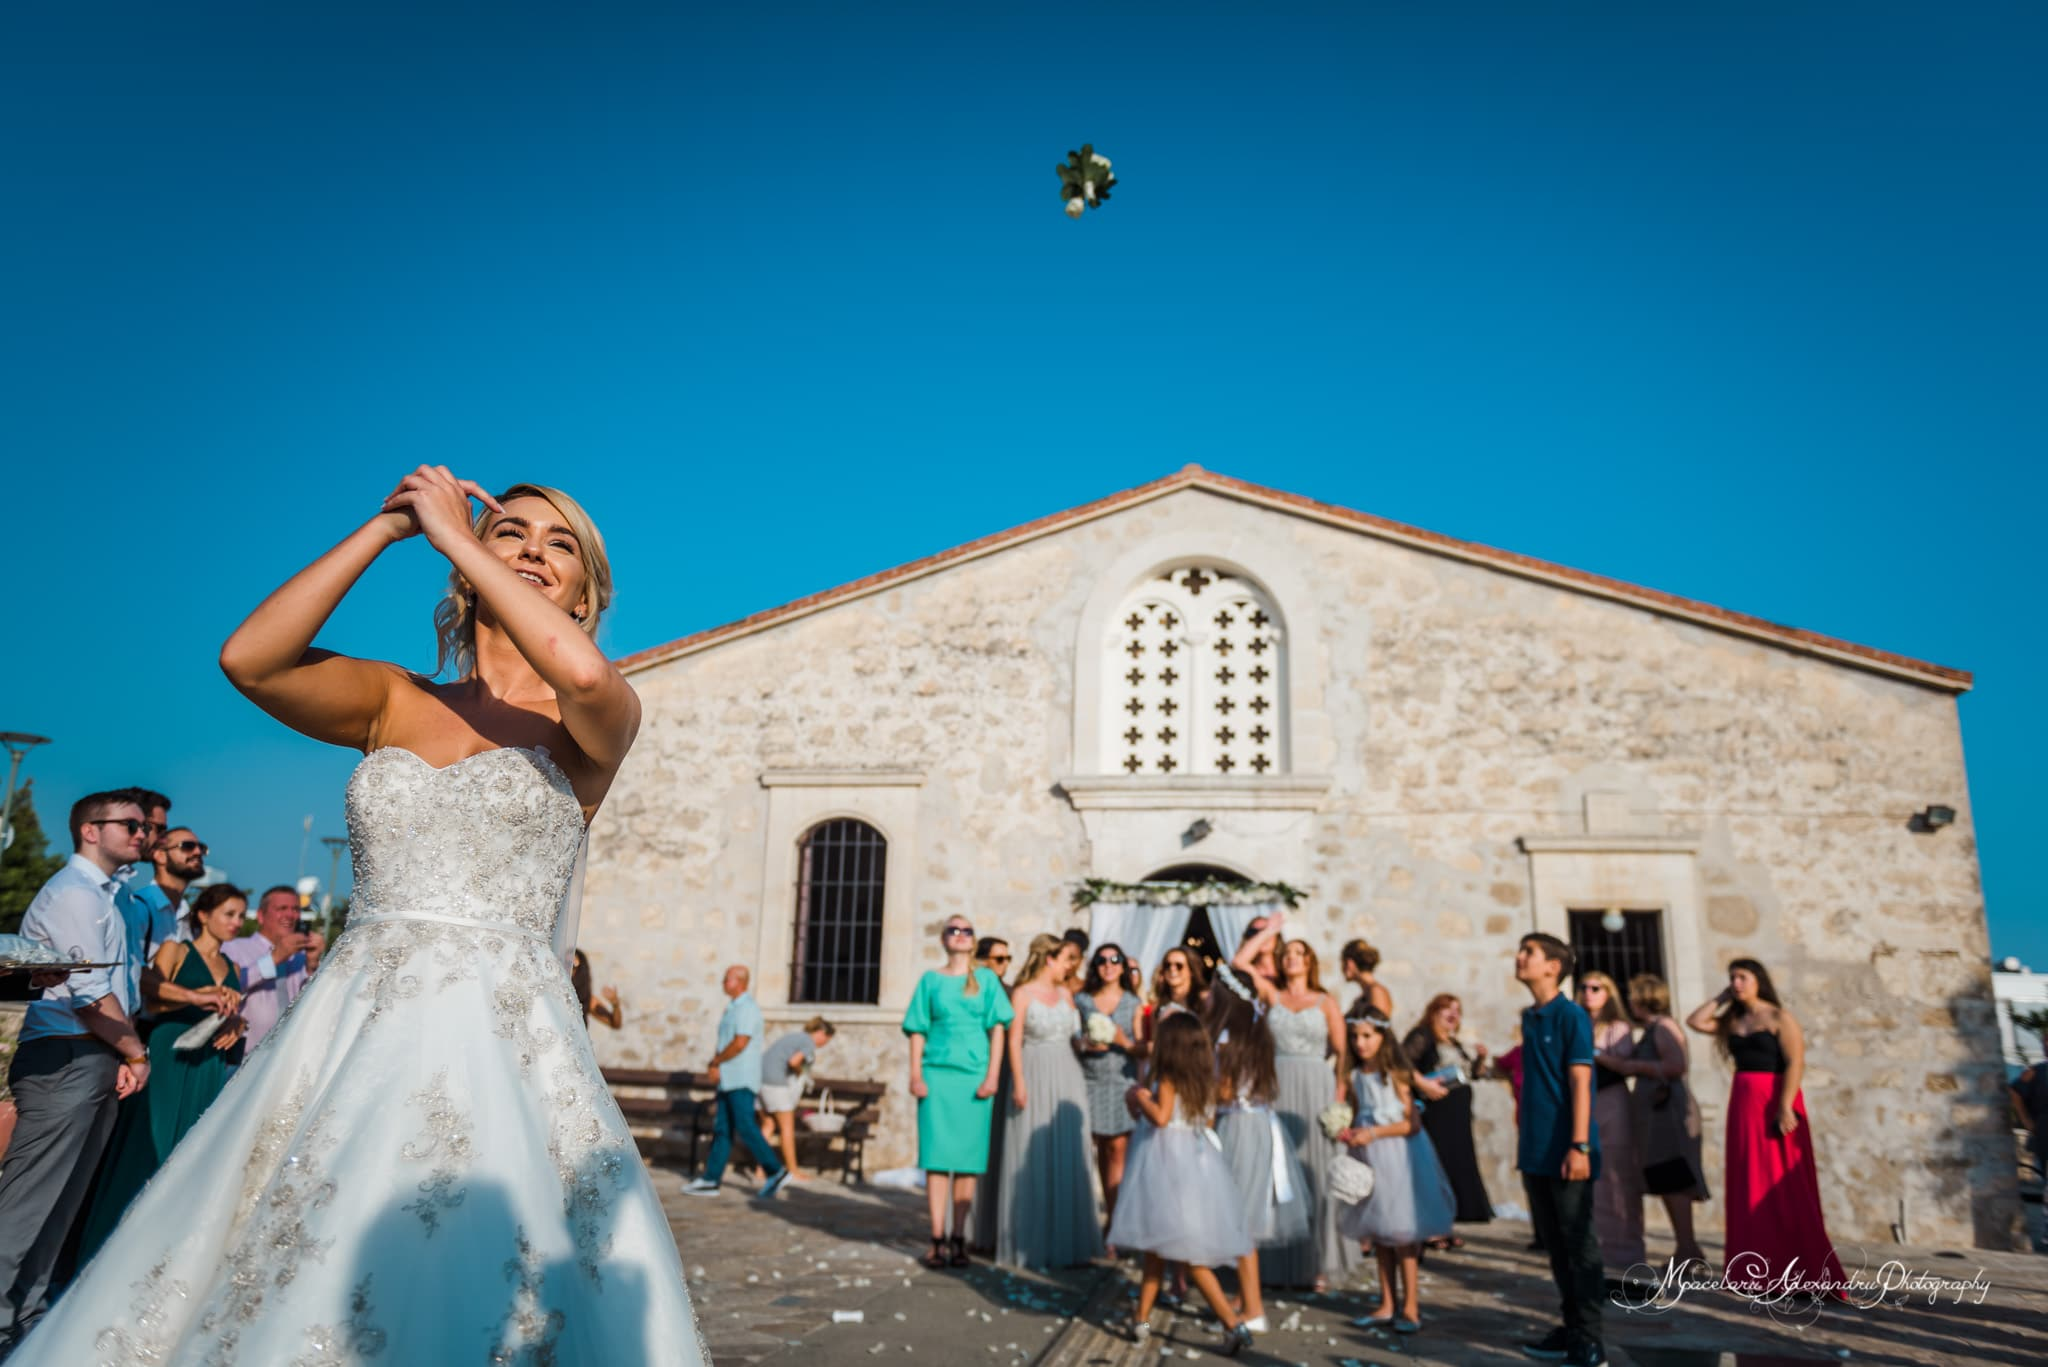 Wedding photography in Paphos - The bride throws the bouquet